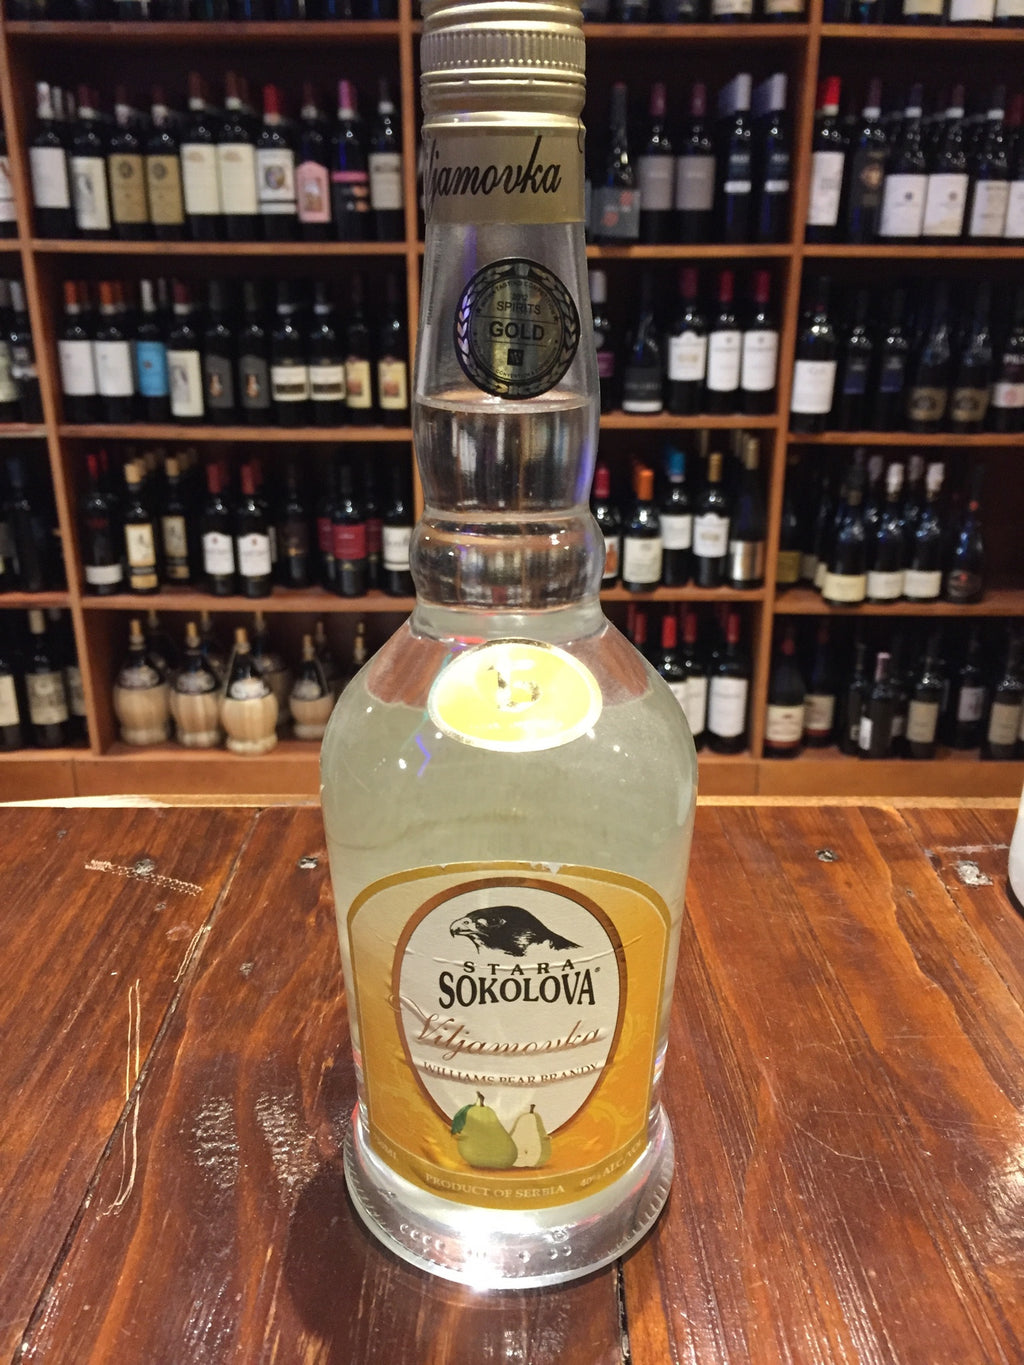 Viljamovka Williams Pear Brandy 750ml Sokolova